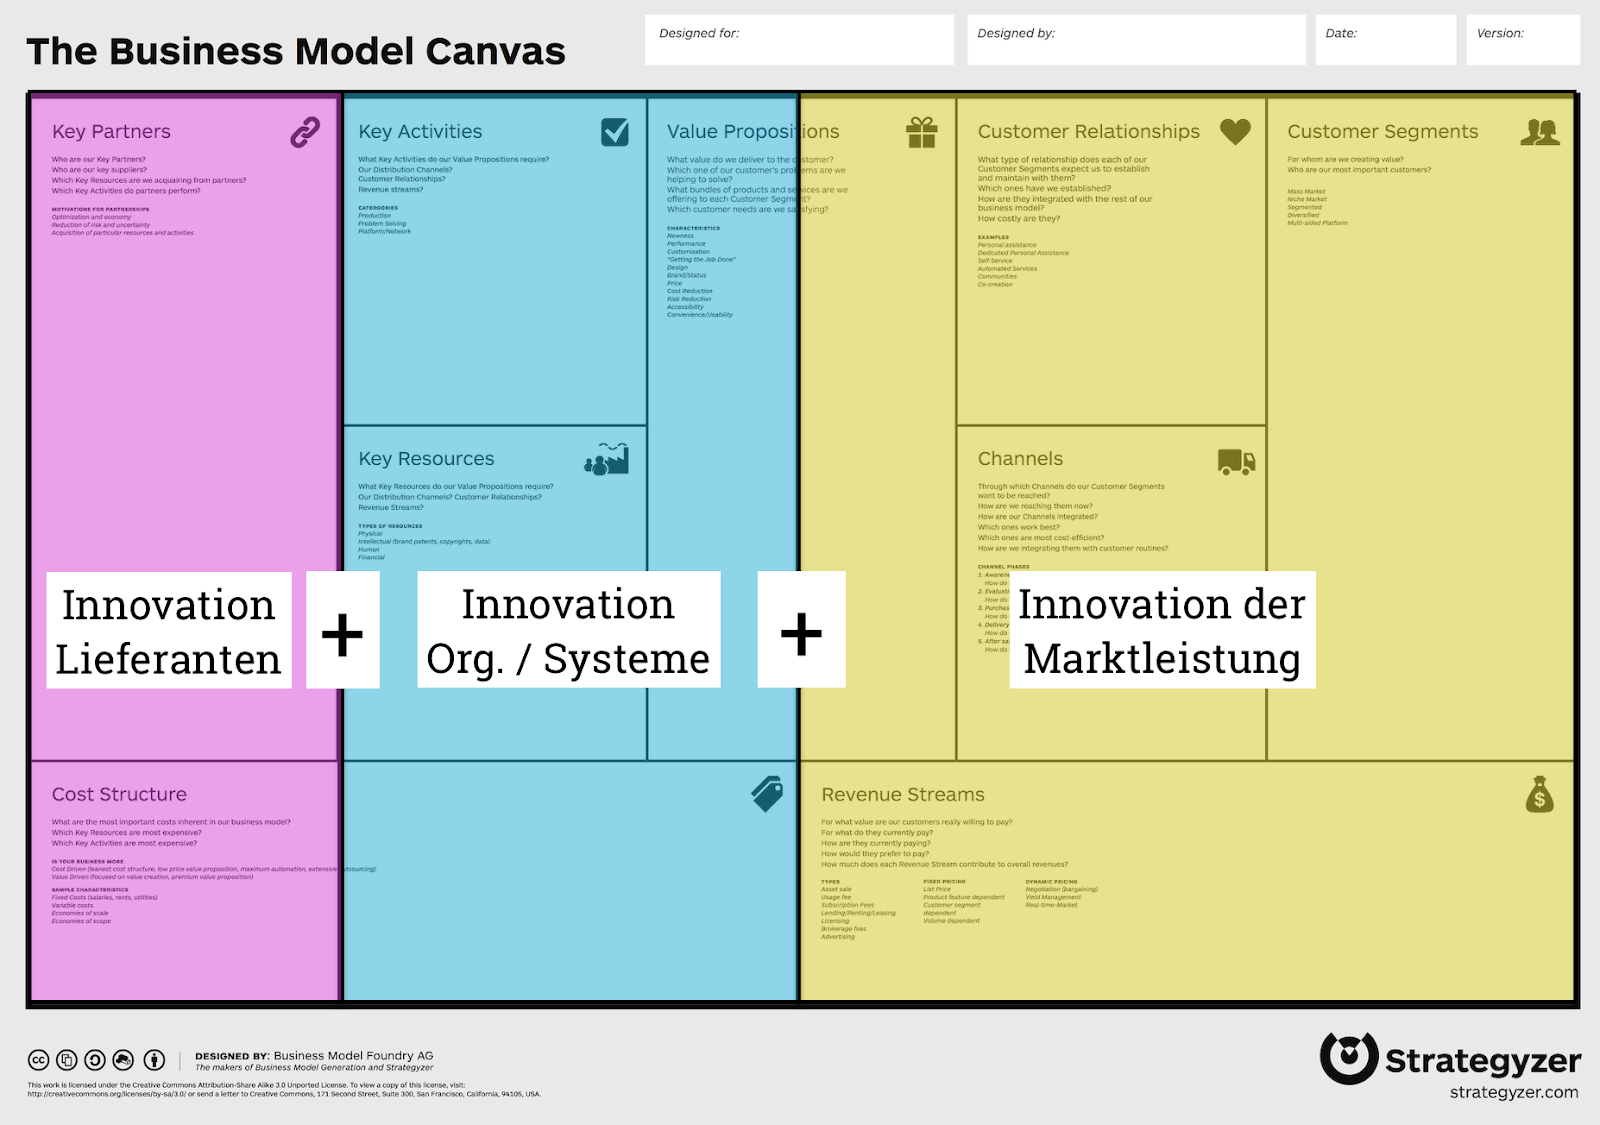 Geschäftsmodellinnovation mit dem Business Model Canvas